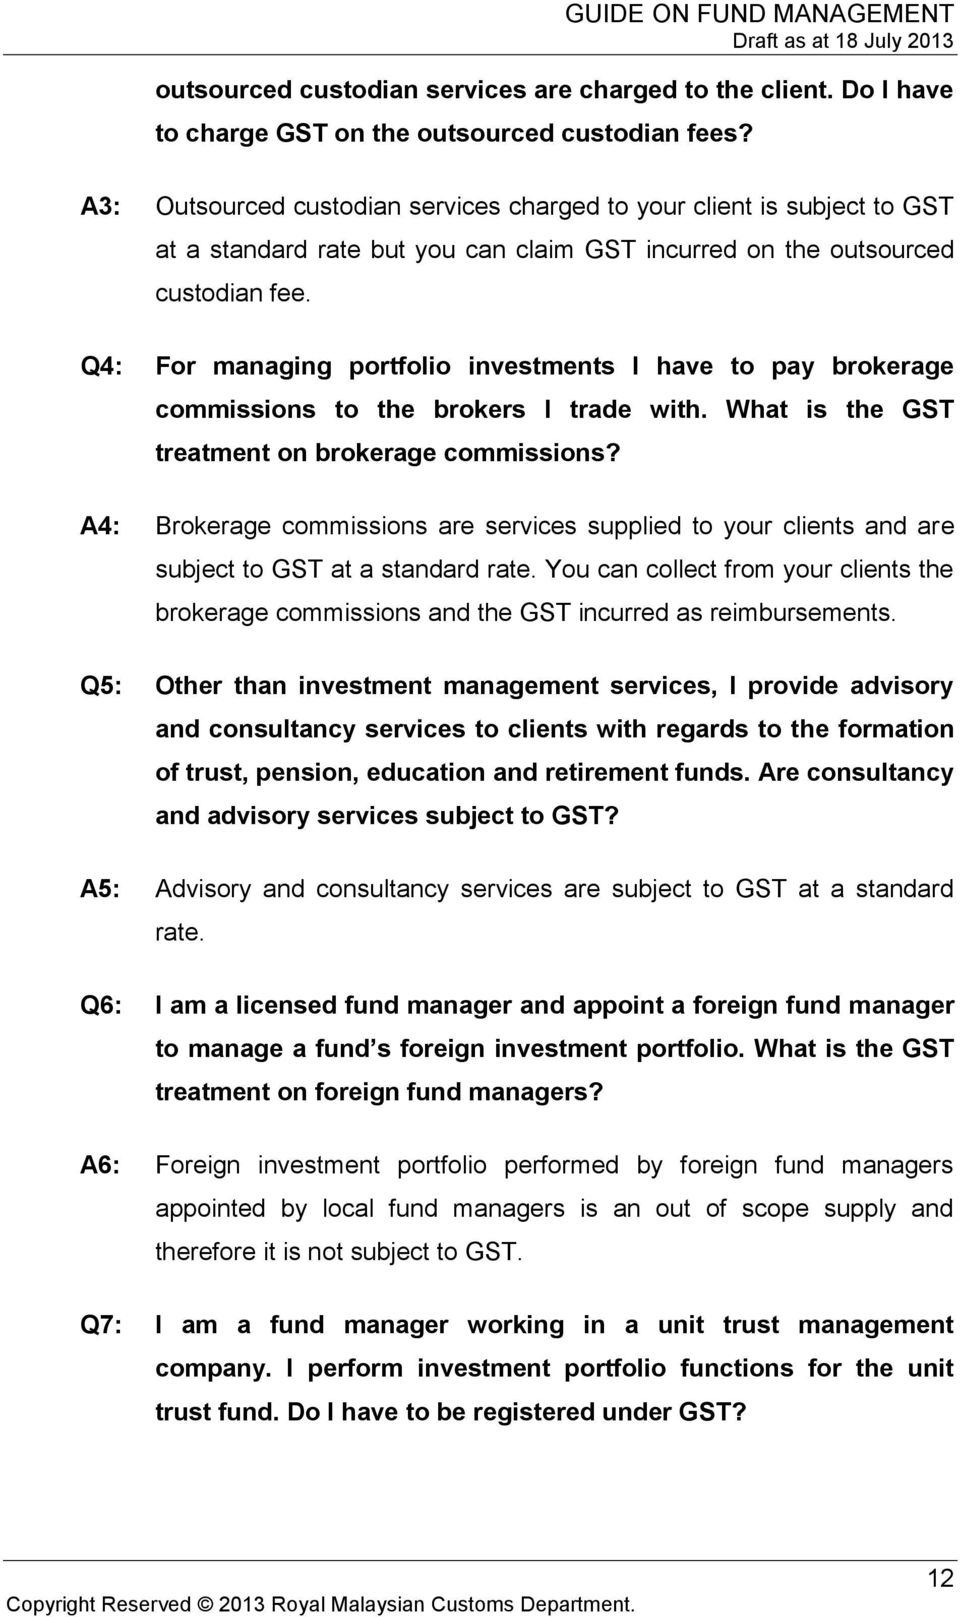 Q4: For managing portfolio investments I have to pay brokerage commissions to the brokers I trade with. What is the GST treatment on brokerage commissions?